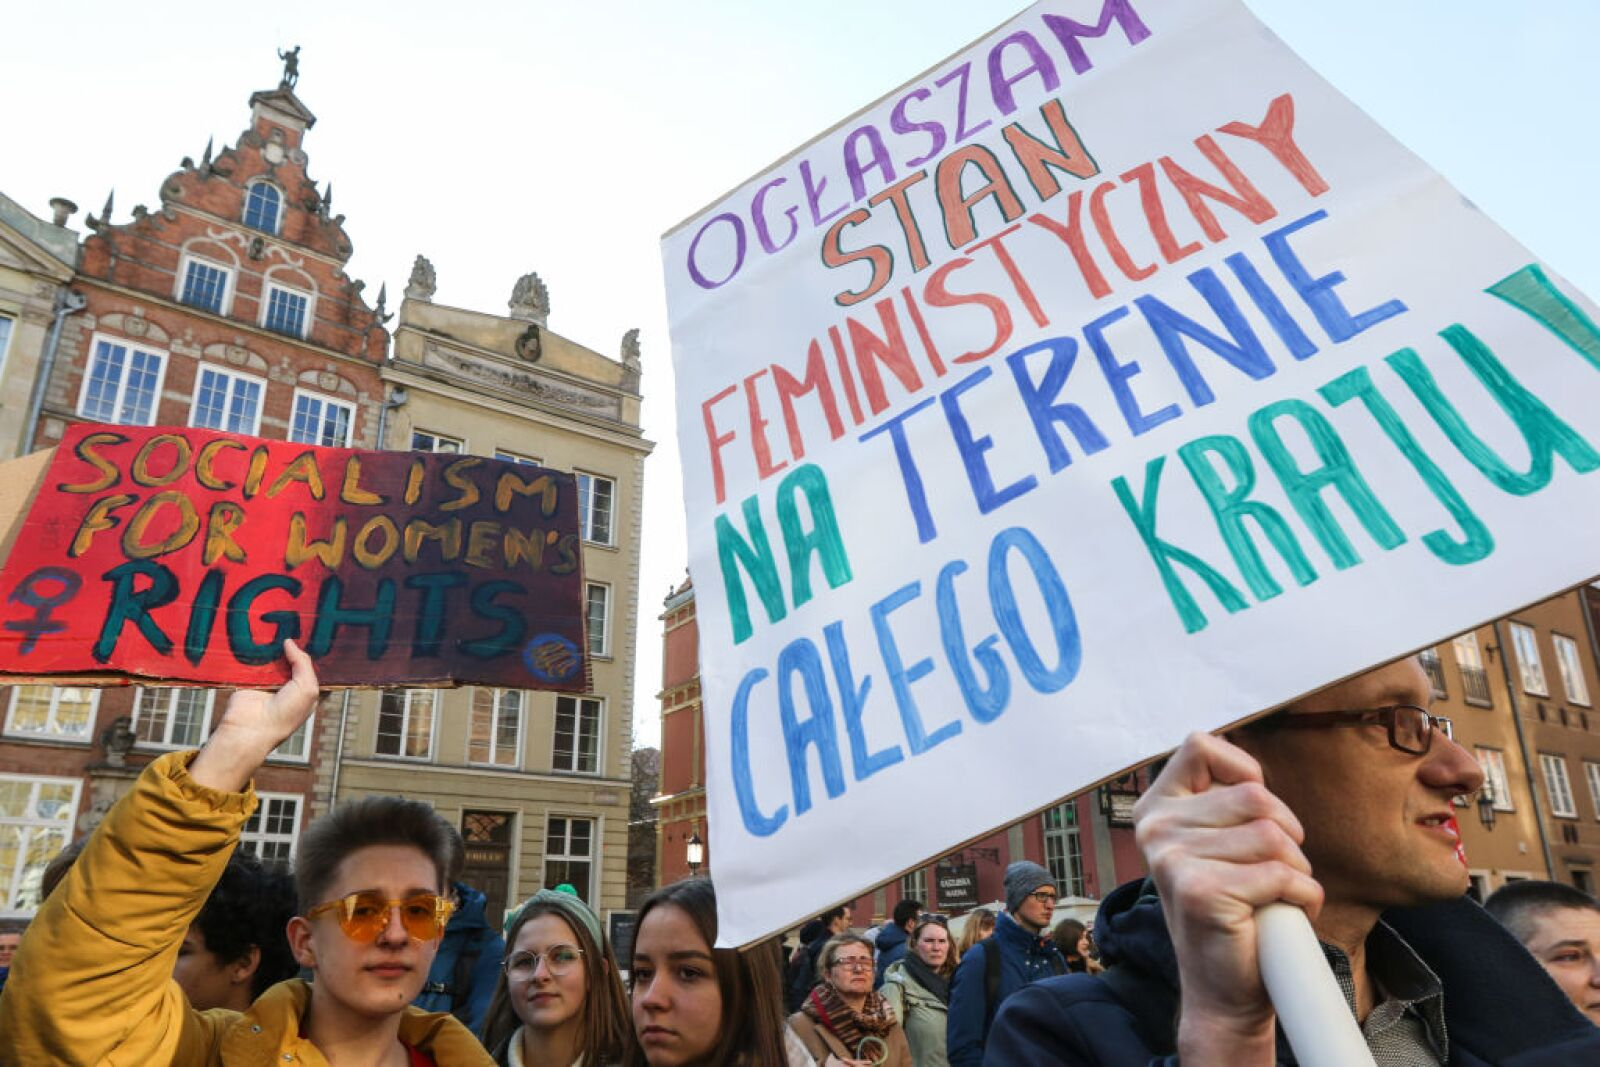 'Manifa 2020' - Annual Feminist and Woman Rights Rally In Gdansk